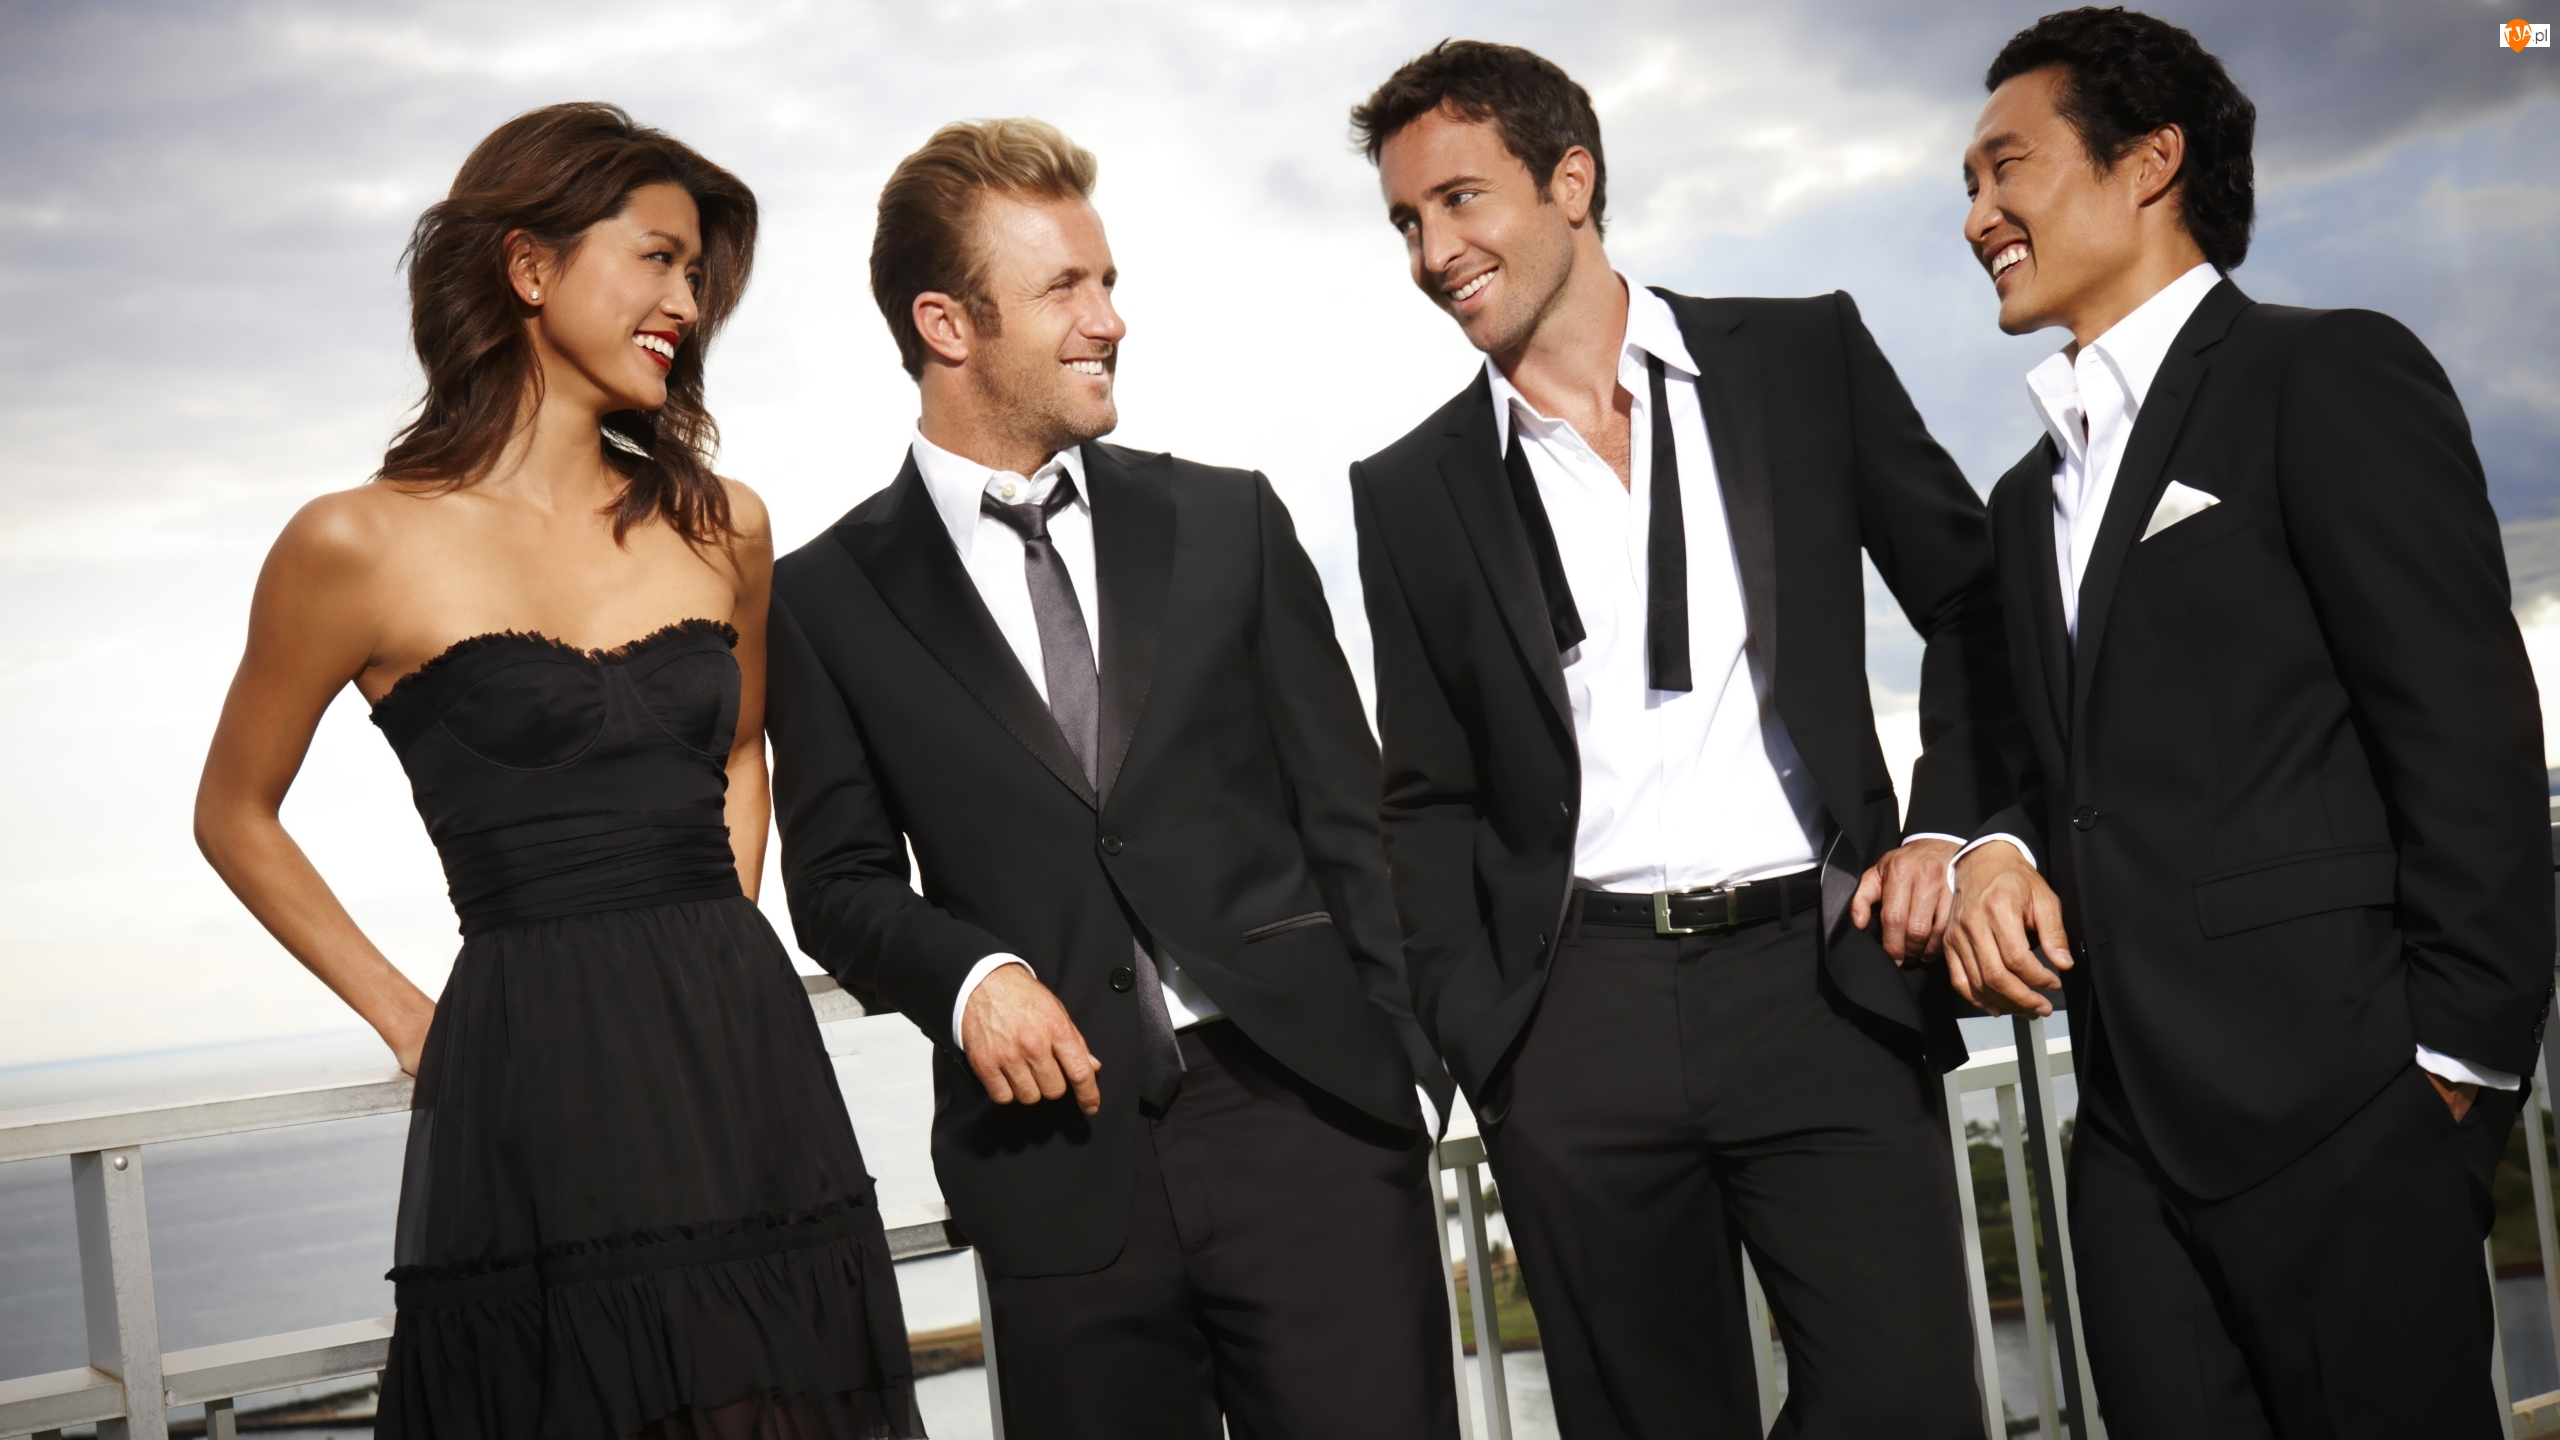 Aktorzy, Hawaii Five-0, Grace Park, Daniel Dae Kim, Scott Caan, Serial, Dany Williams, Aktorka, Kono Kalakaua, Steve McGarrett, Chin Ho Kelly, Alex O Loughlin